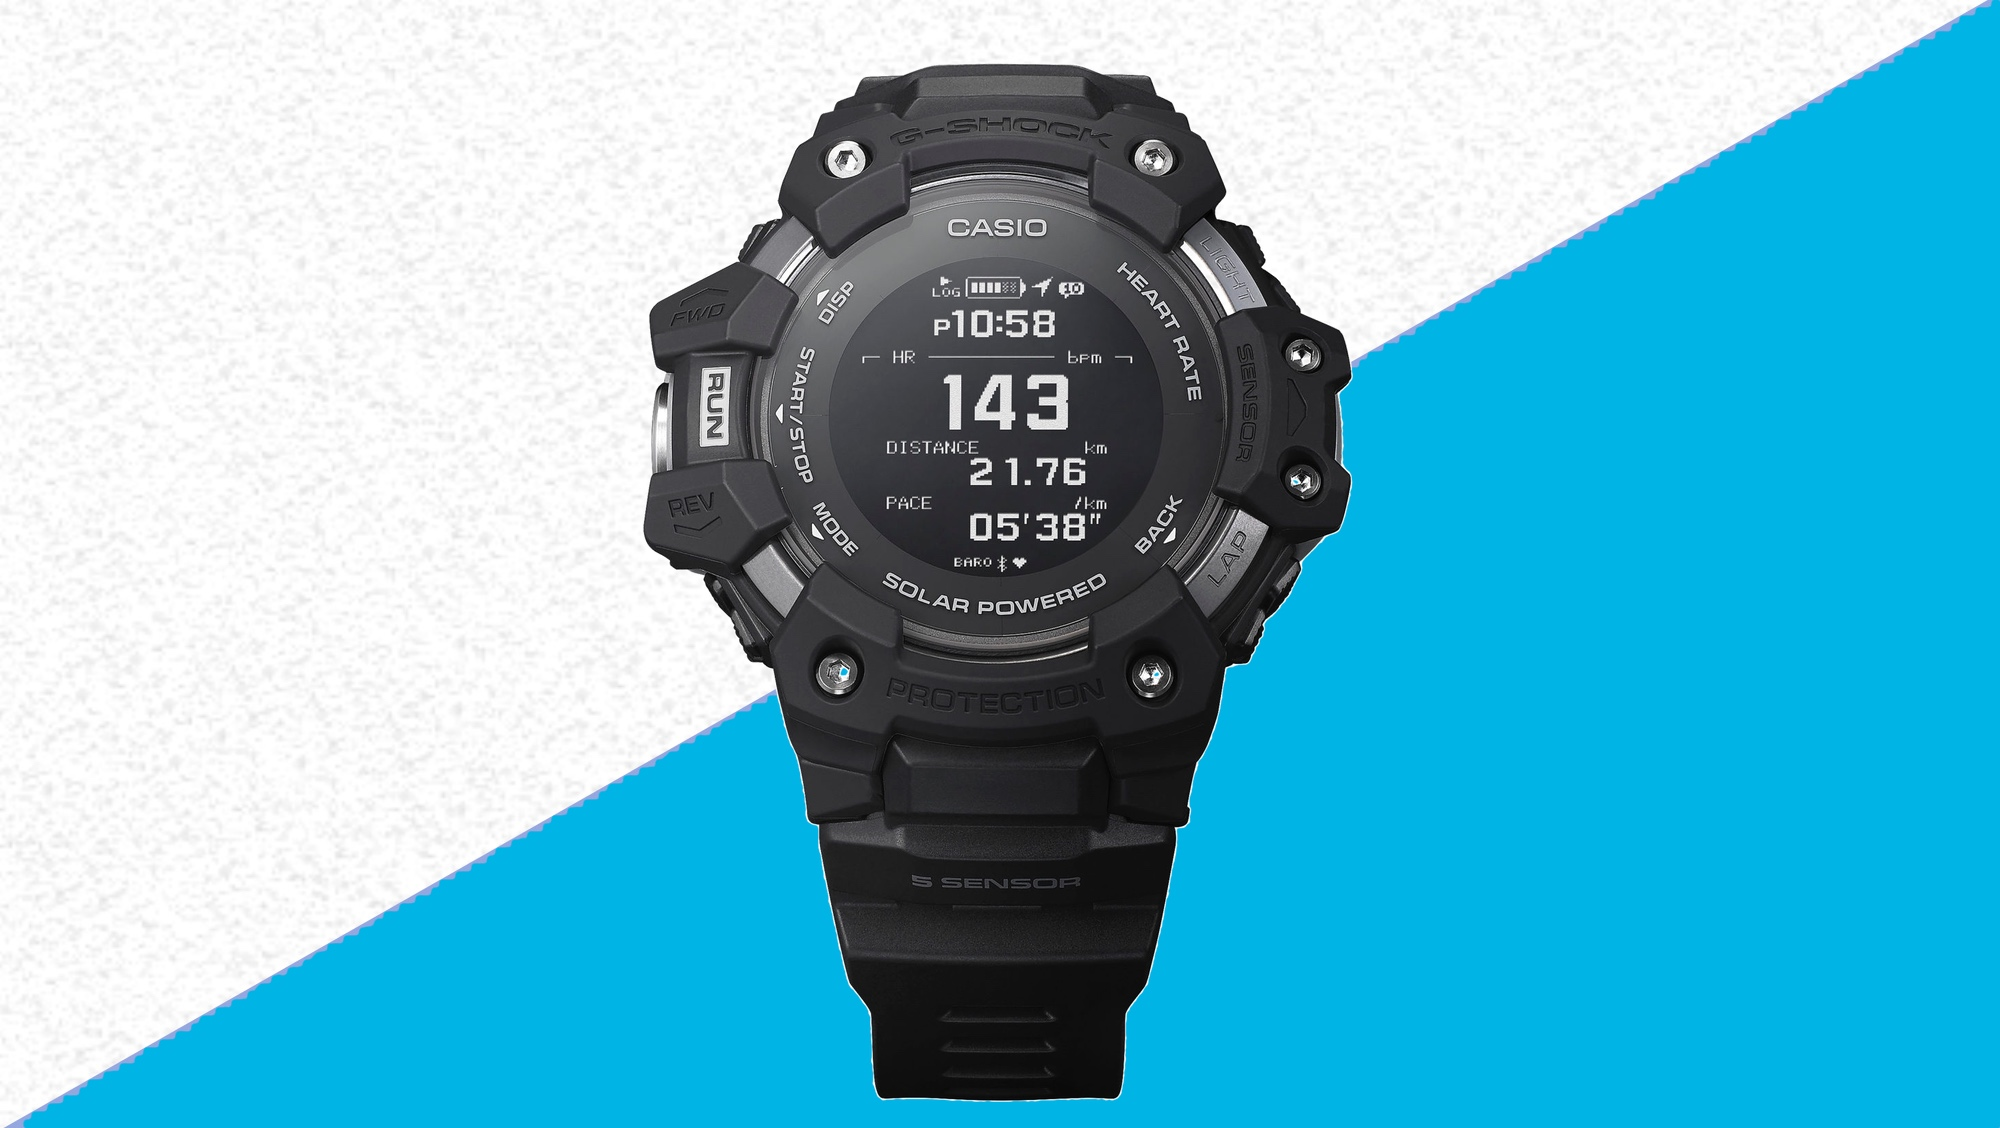 Monster G-Shock smartwatch announced